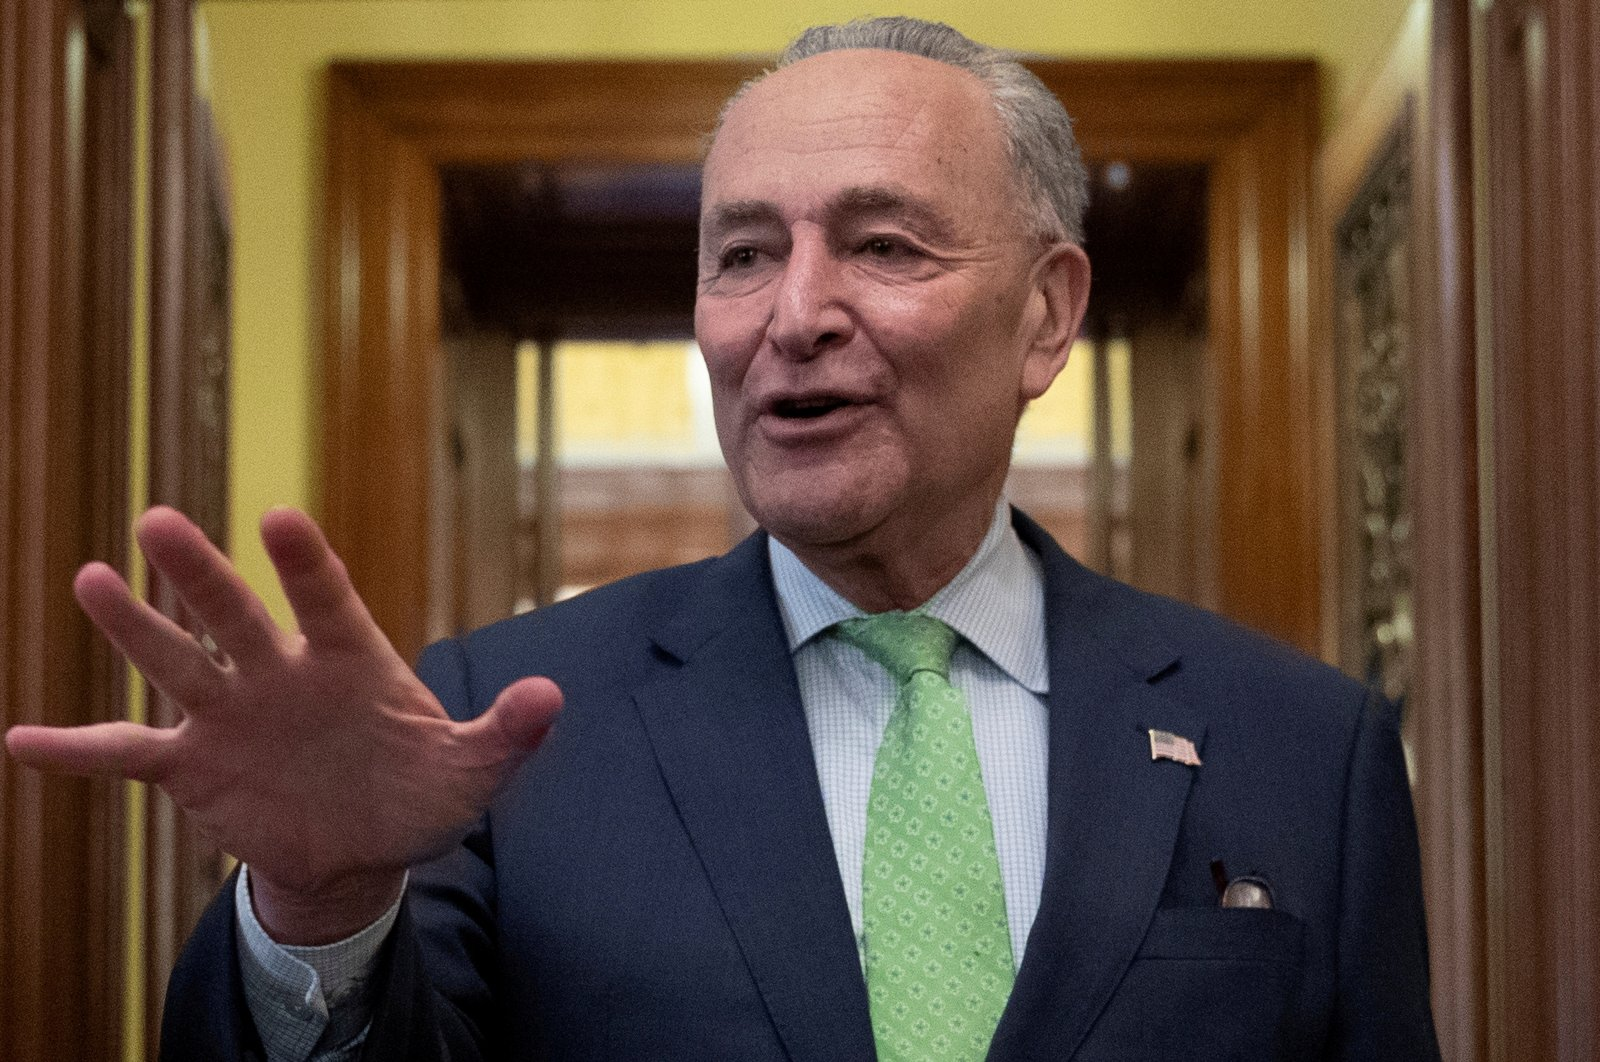 Senate Majority Leader Chuck Schumer (D-NY) speaks to news reporters following the announcement of a bipartisan deal on infrastructure, on Capitol Hill in Washington, U.S., June 24, 2021. (Reuters Photo)